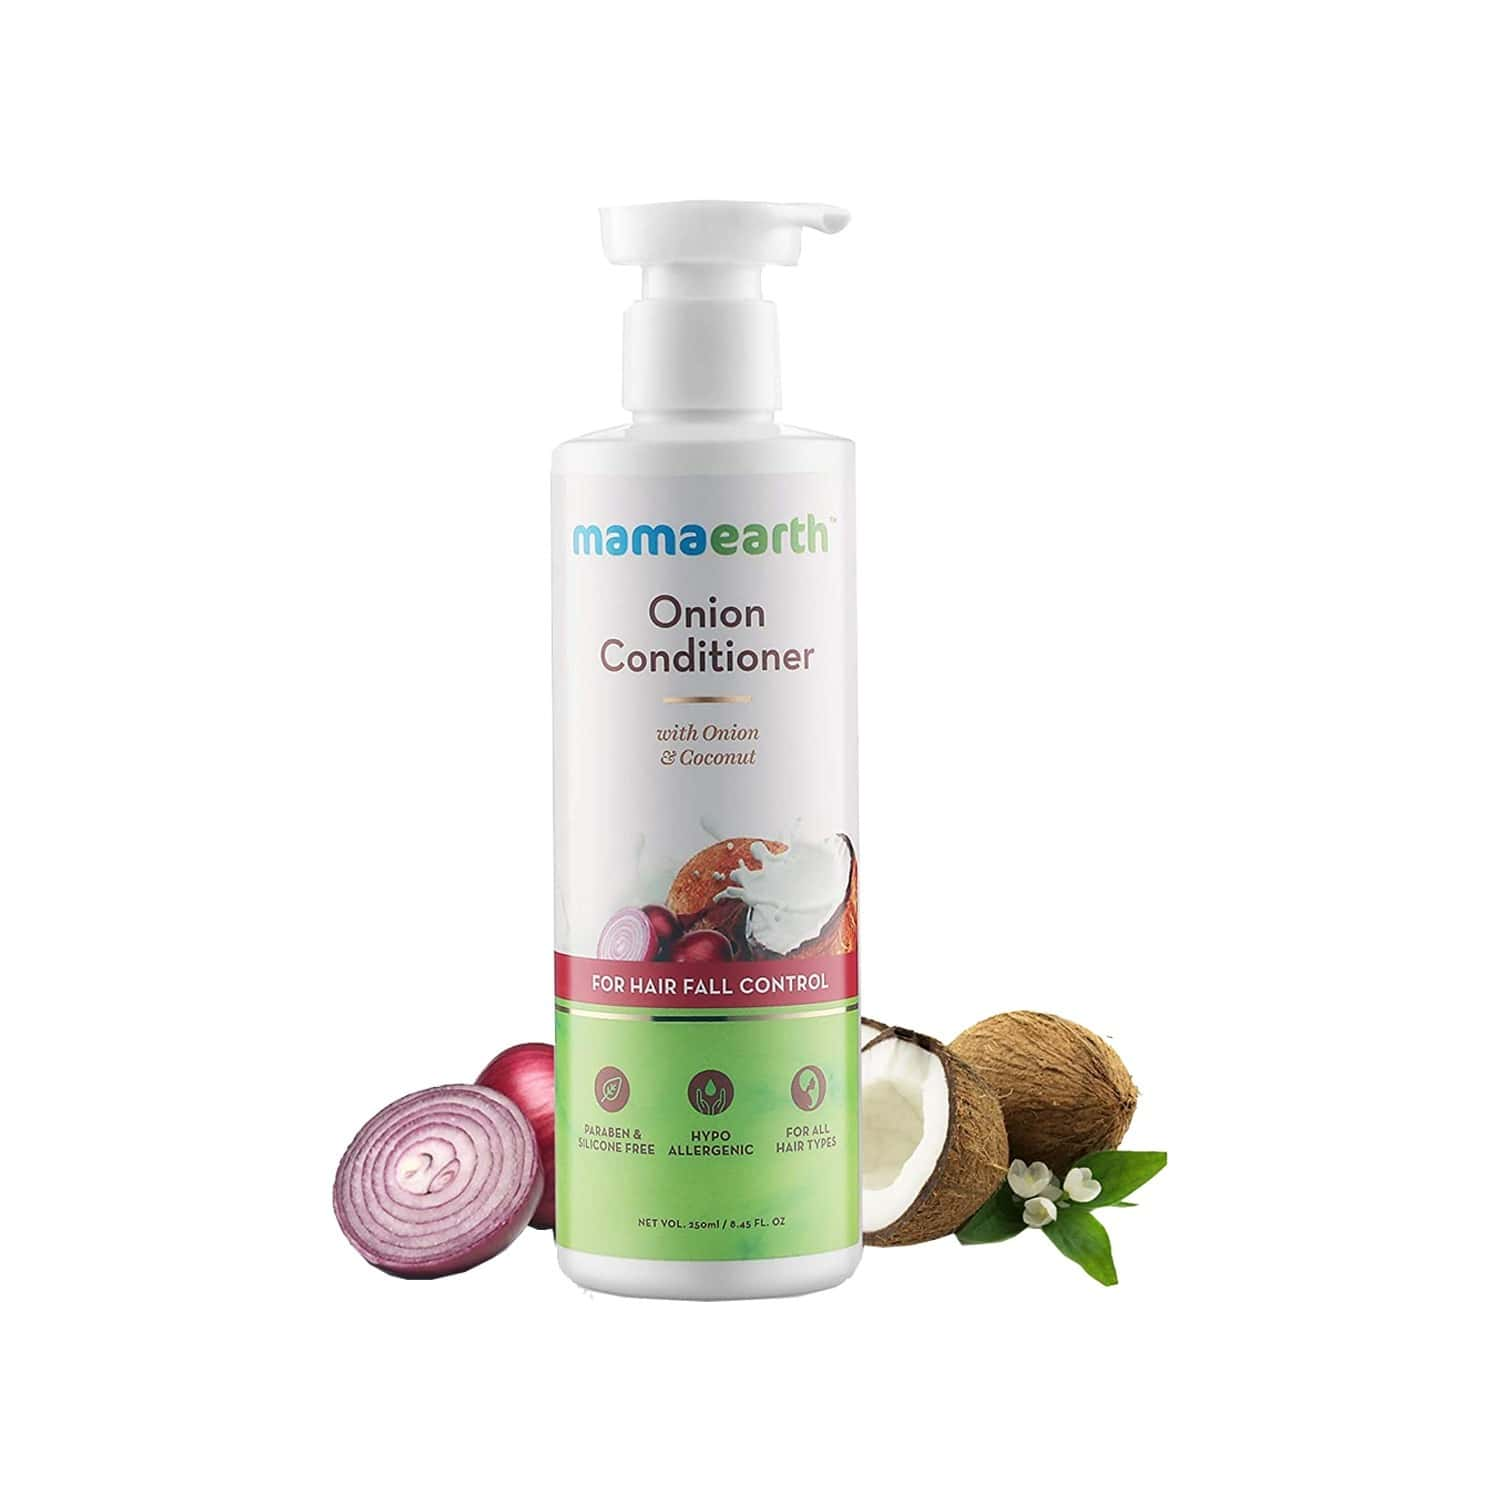 Mamaearth Onion Conditioner For Hair Fall Control With Coconut Oil Bottle Of 400 Ml